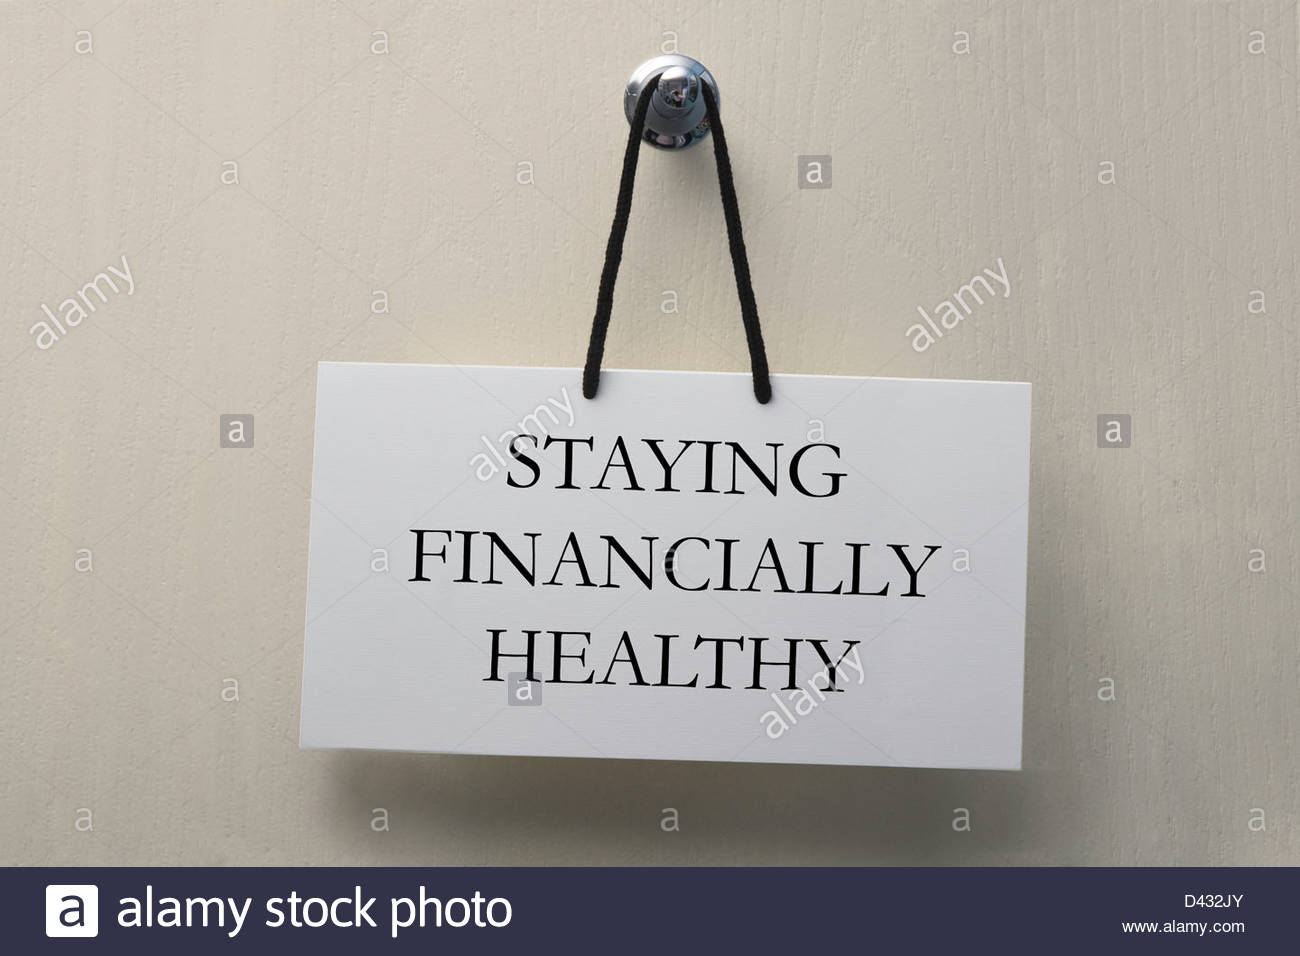 Staying financially healthy sign on door - Stock Image